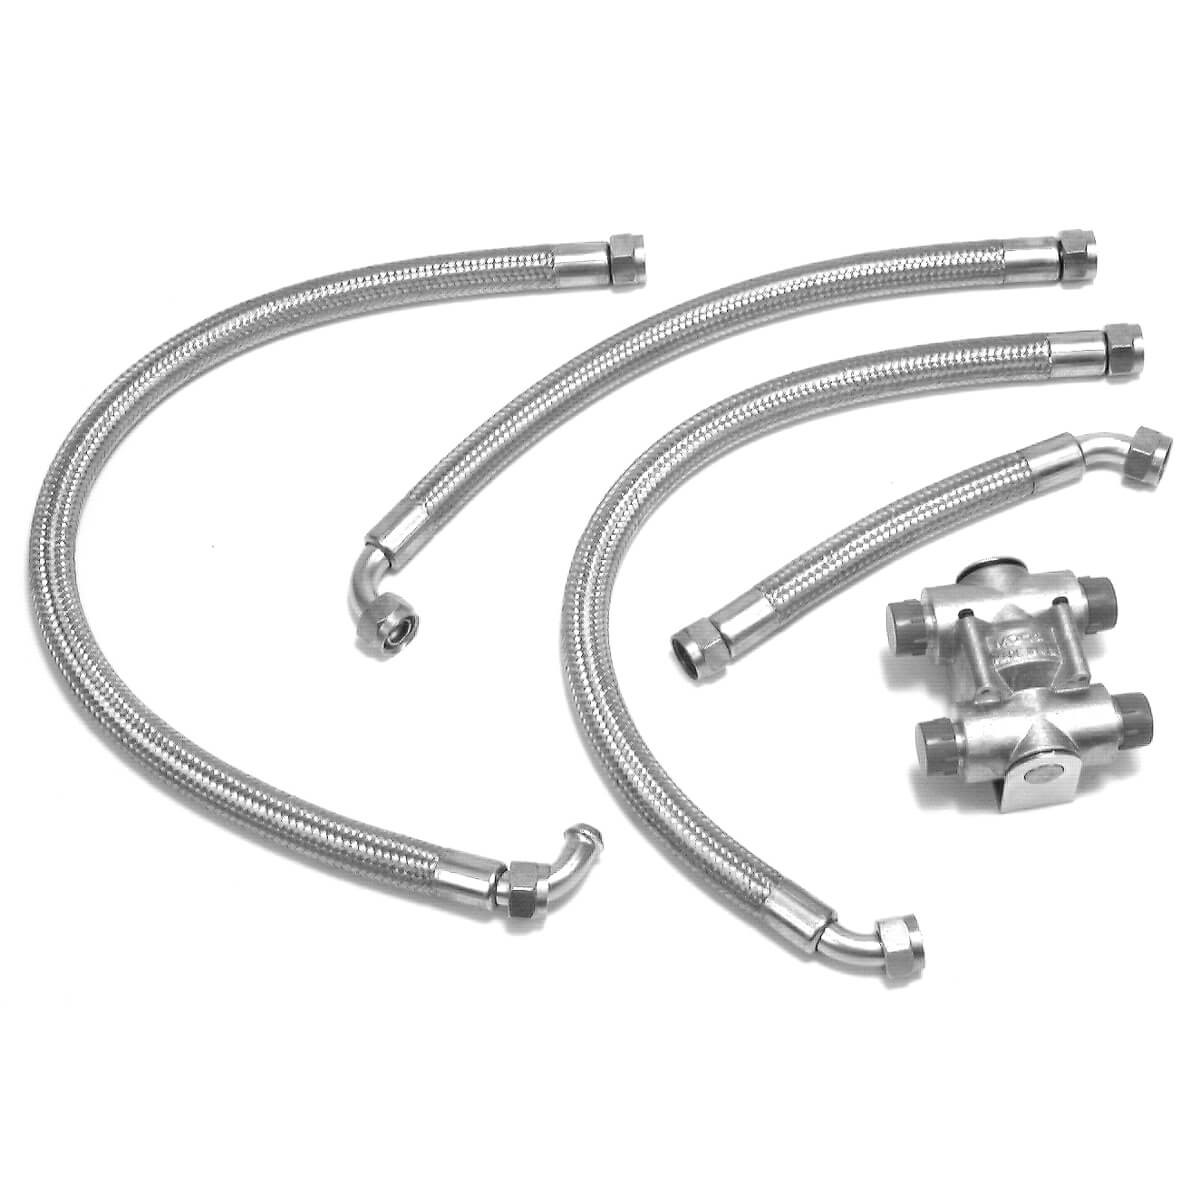 oil cooler installation kits - oil system